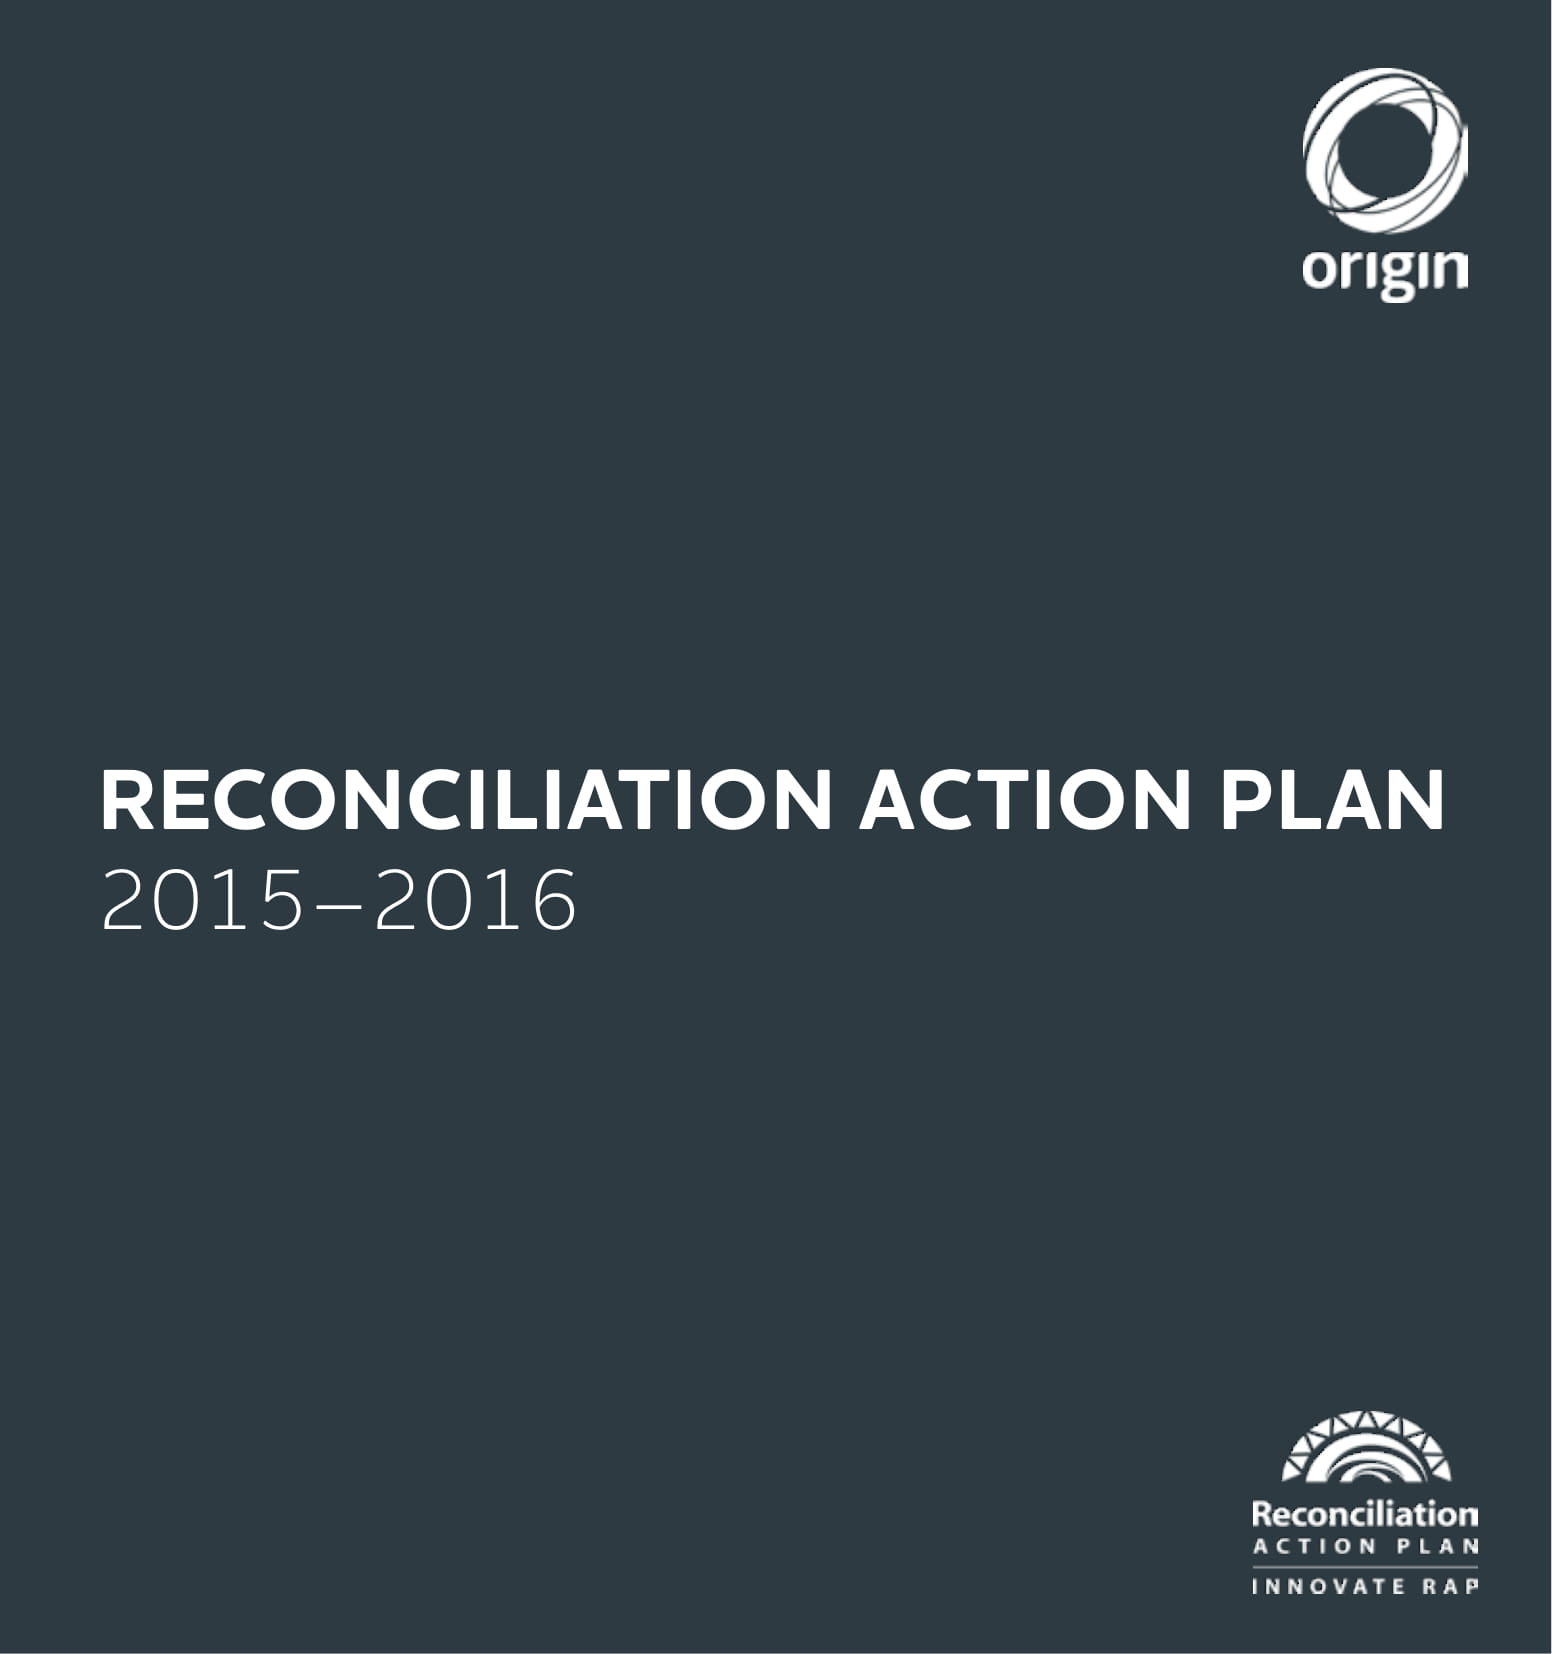 detailed reconciliation action plan example 011